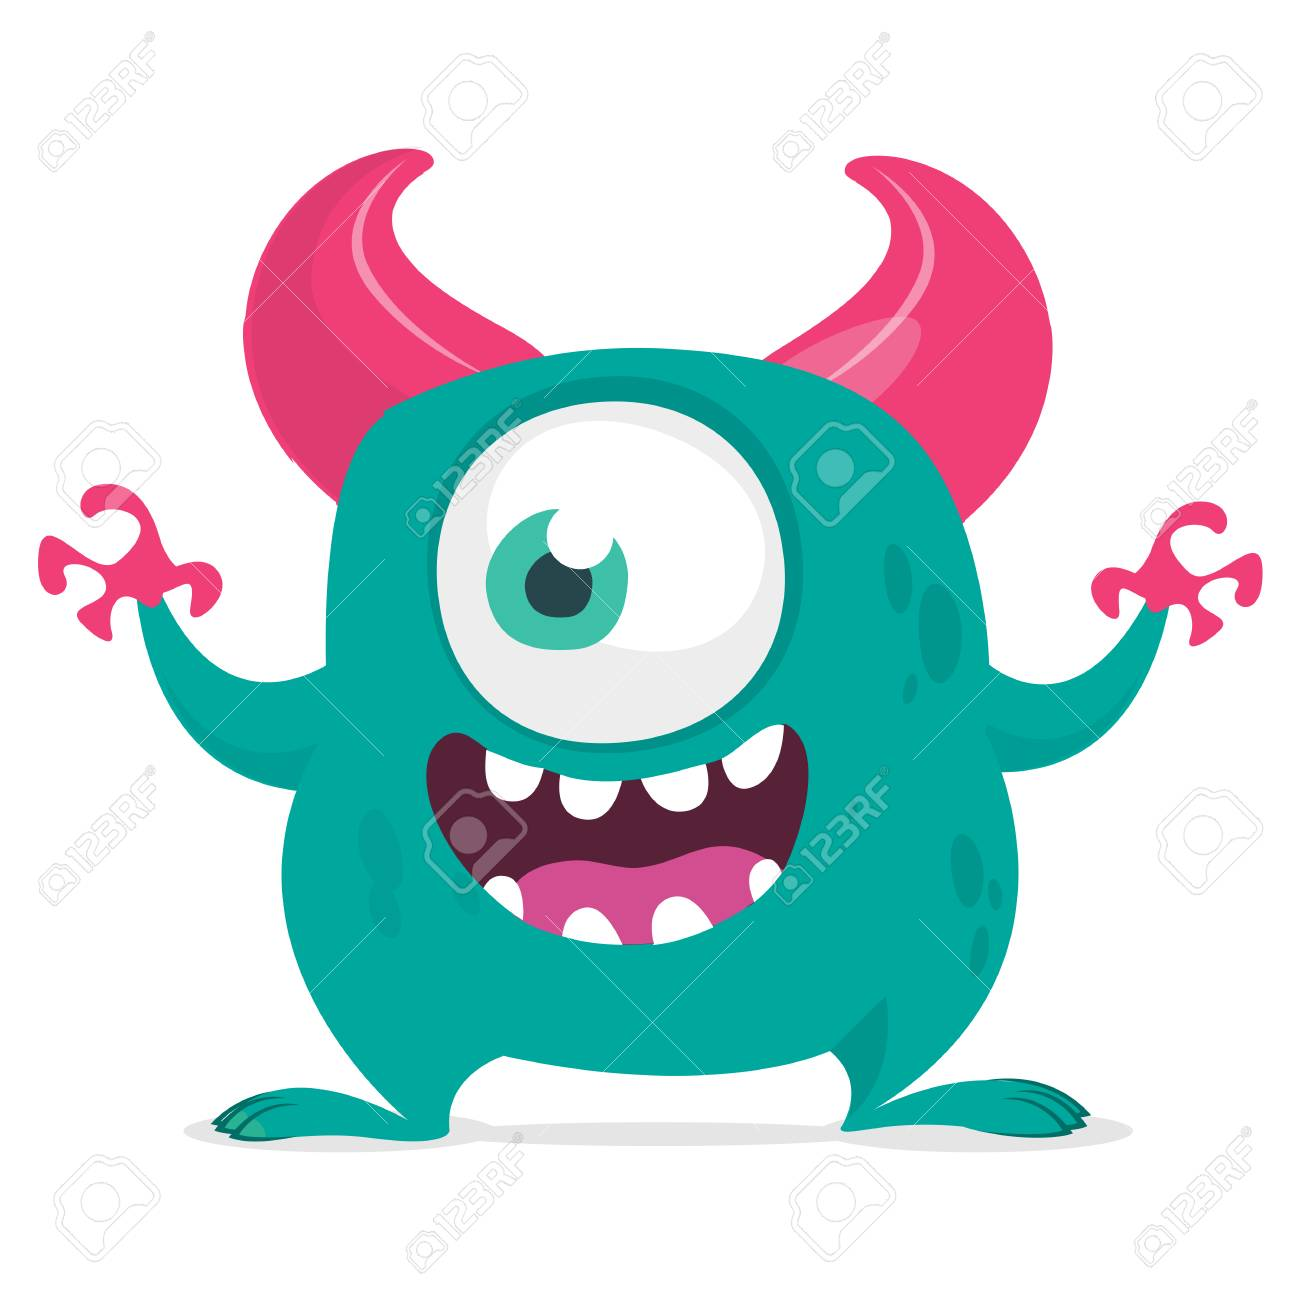 Funny Cartoon Monster With One Eye Vector Blue One Eyed Monster Royalty Free Cliparts Vectors And Stock Illustration Image 104064156